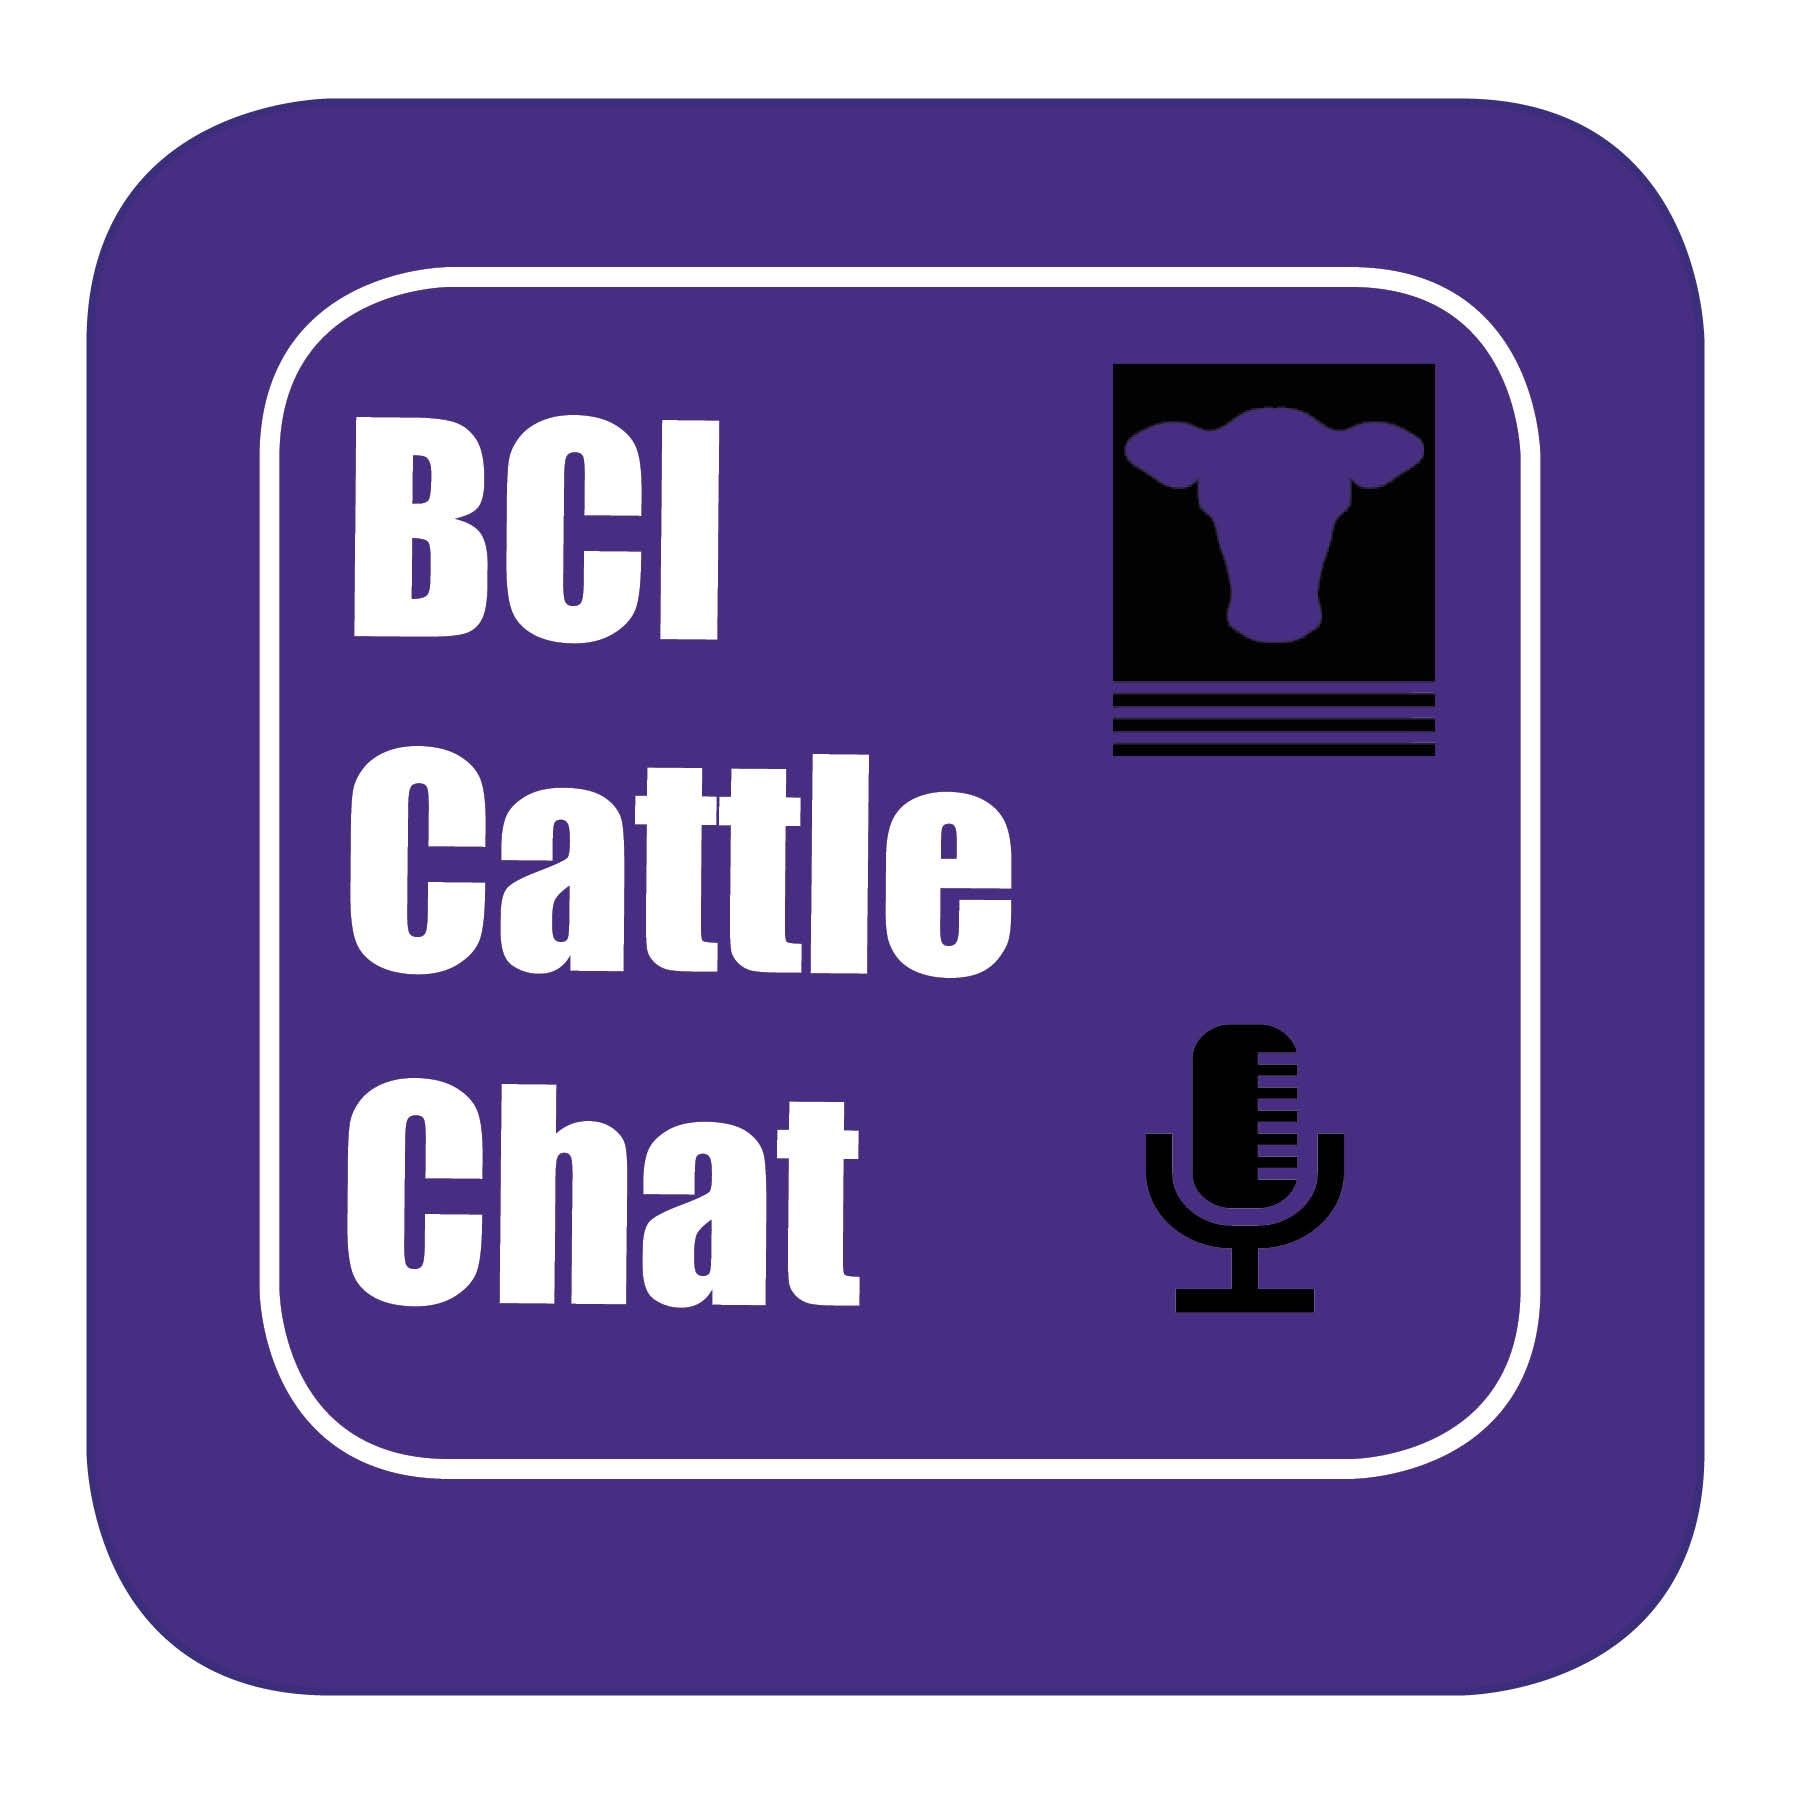 BCI Cattle Chat - Episode 24